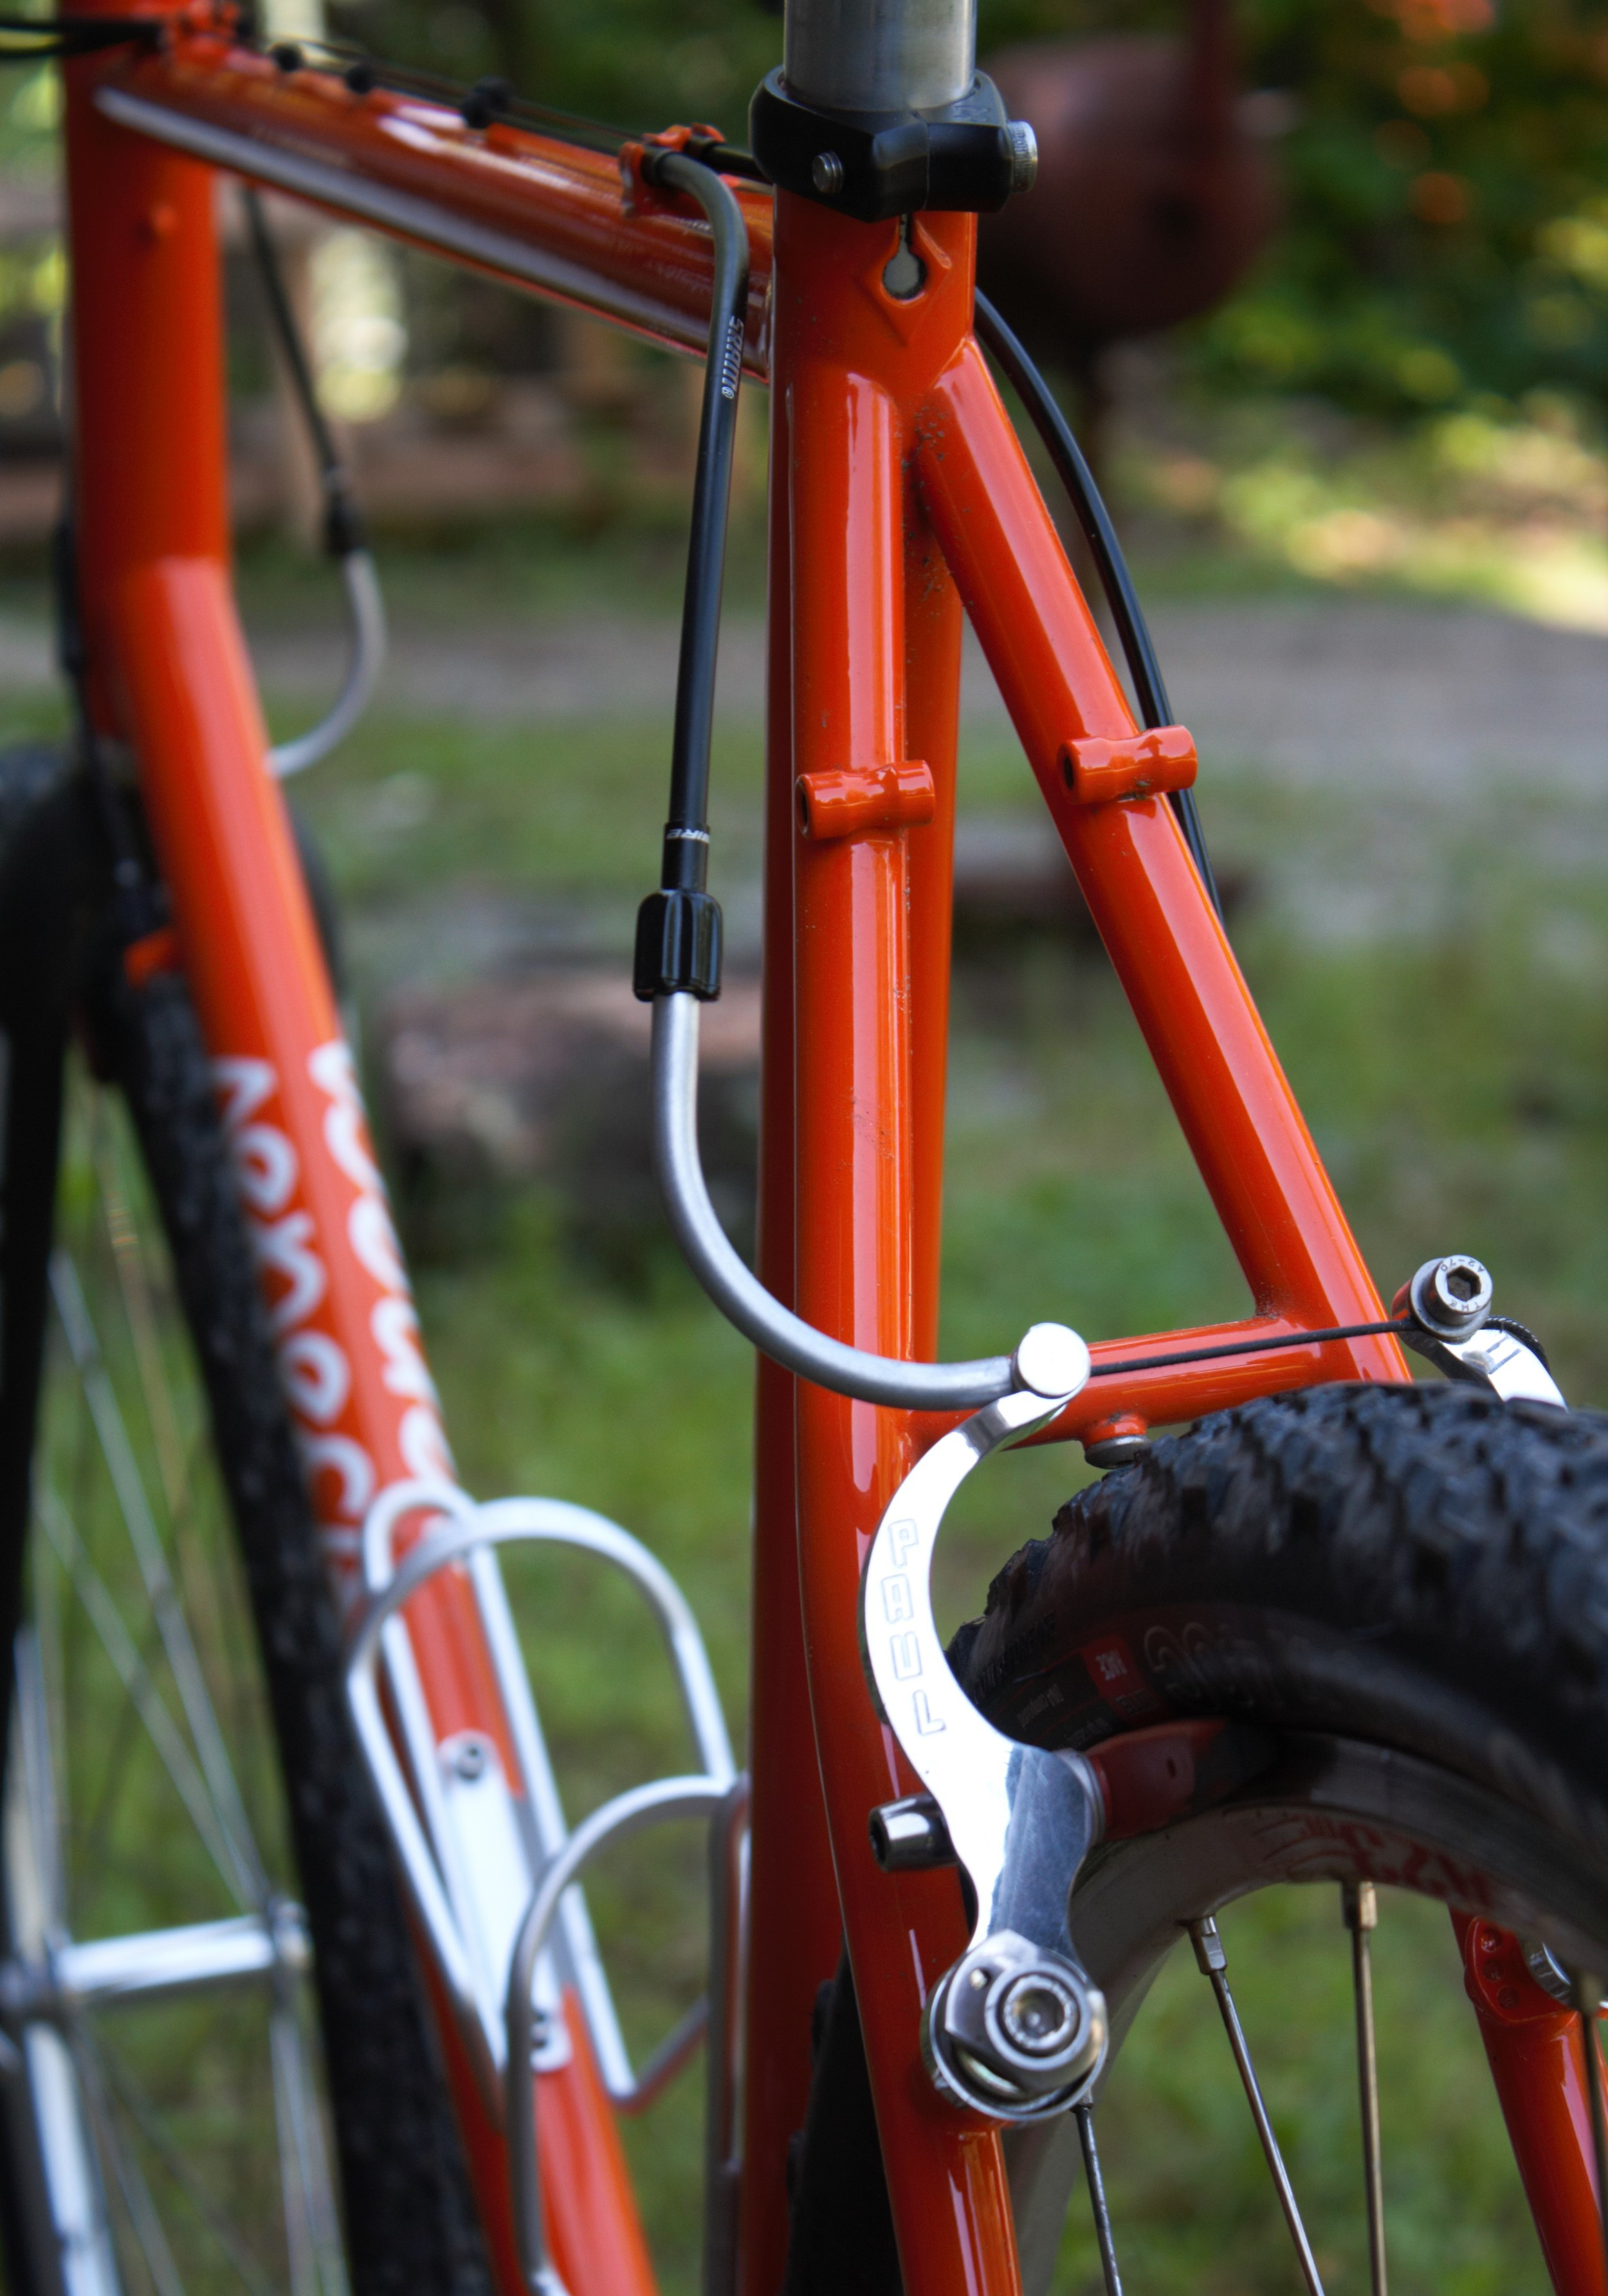 Rack and fender mounts visible. On the head tube (just visible in the upper left corner), a pump peg.